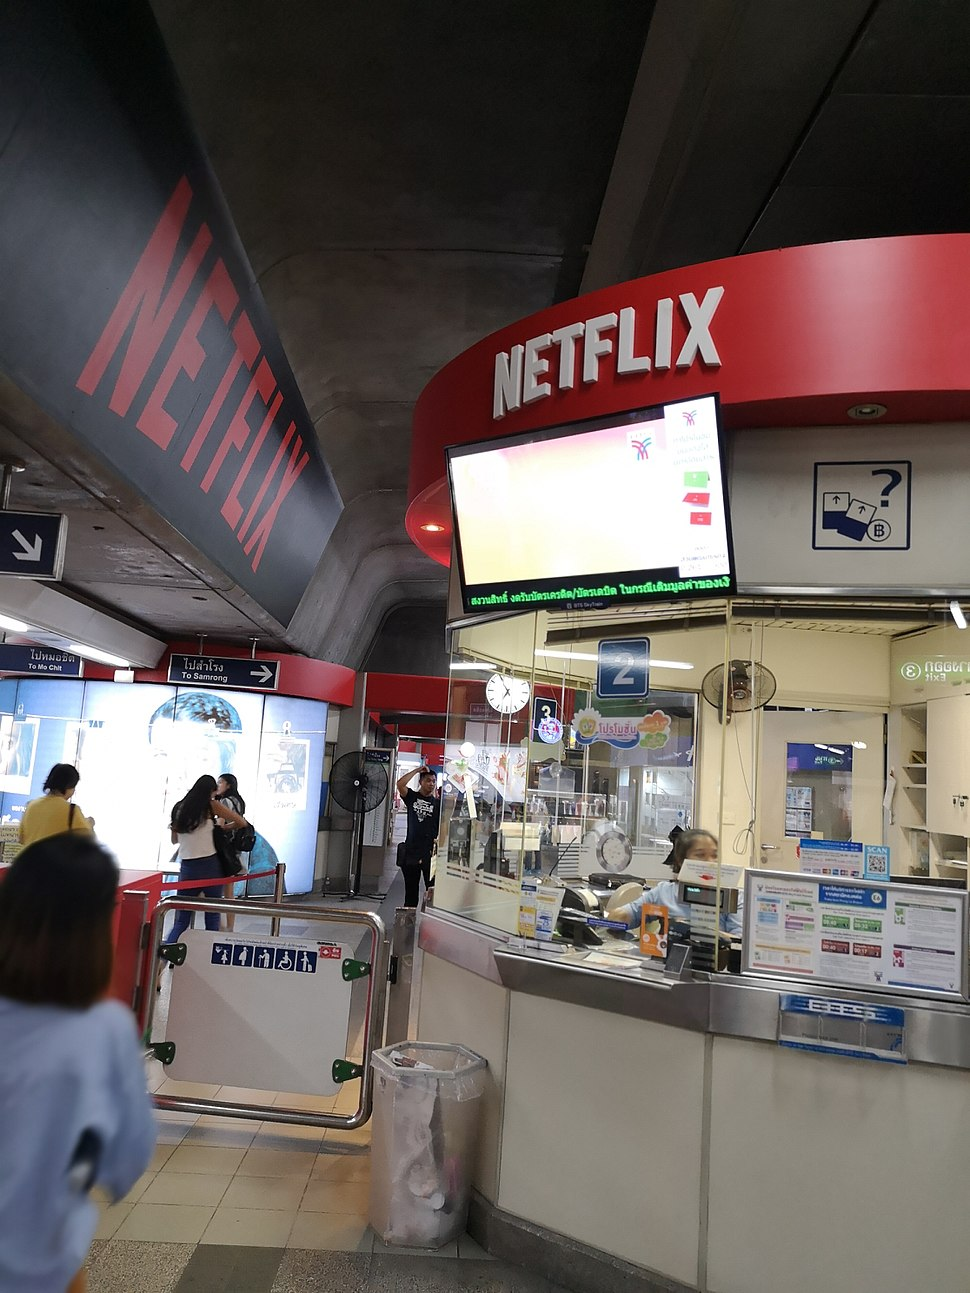 Netflix at Thong Lor